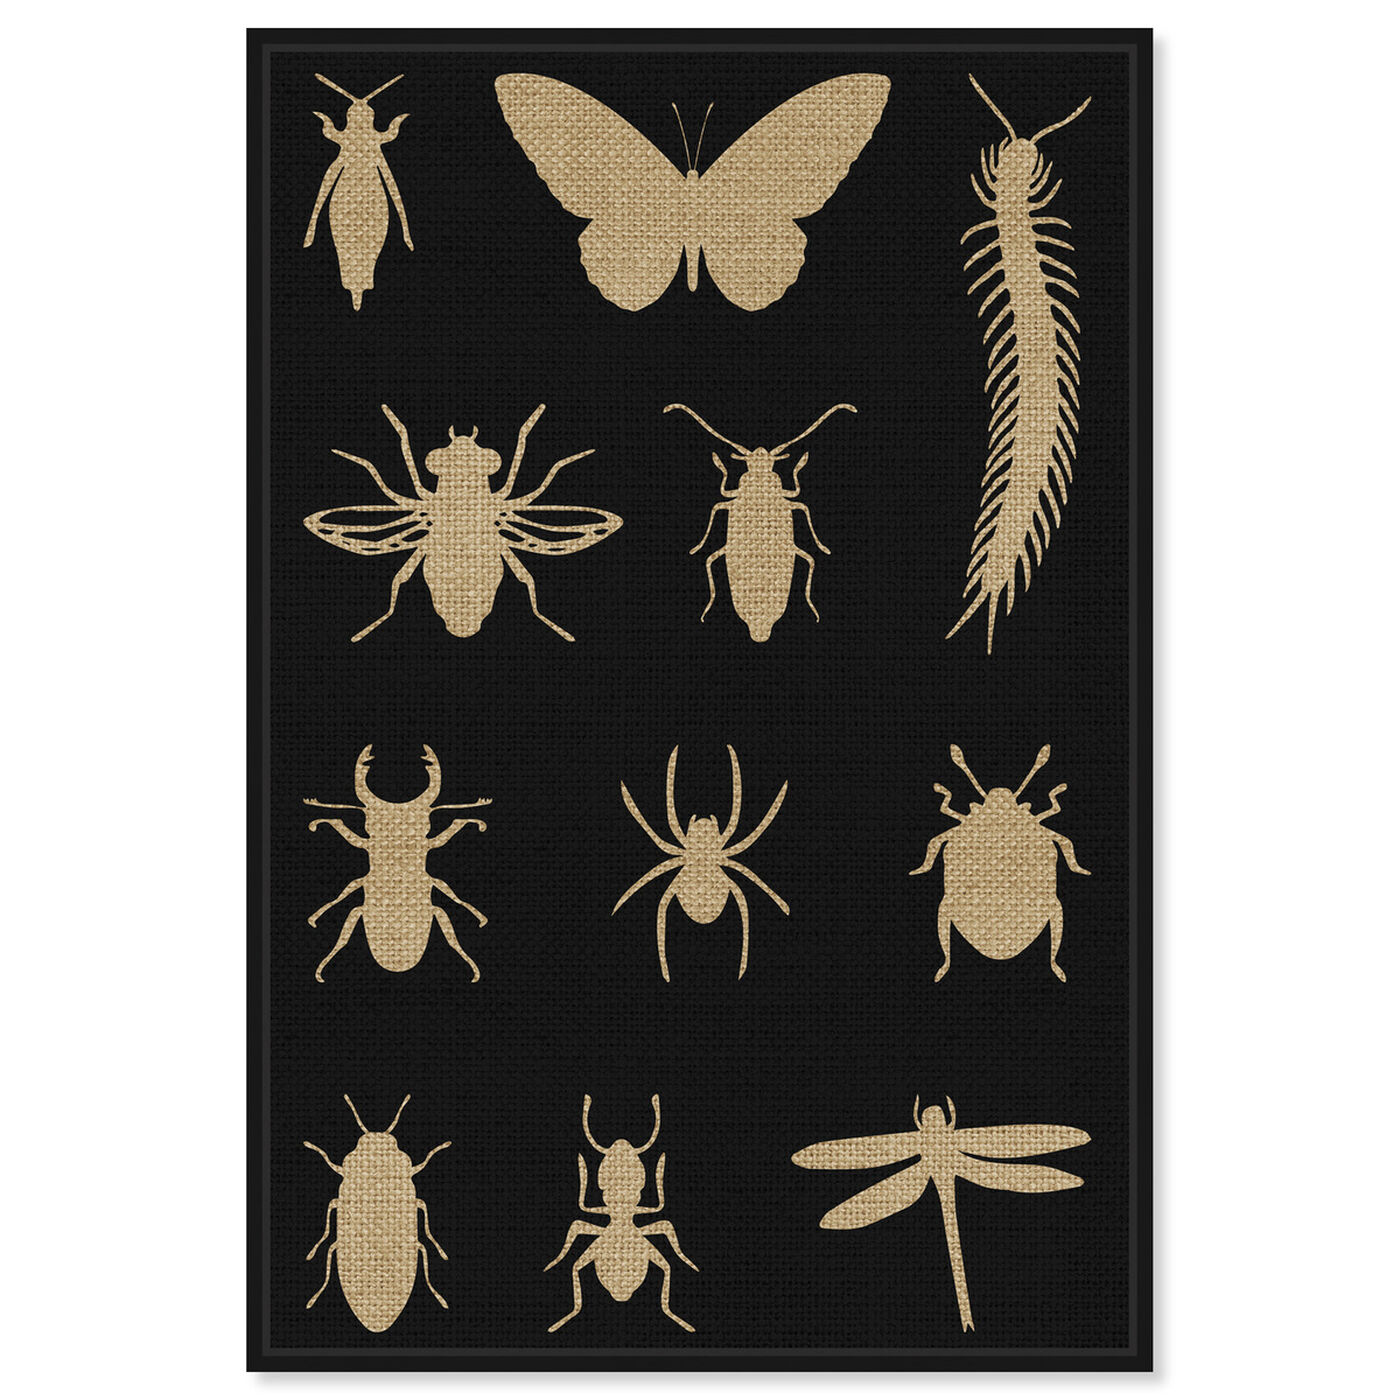 Front view of Black Creepy Crawlies featuring animals and insects art.